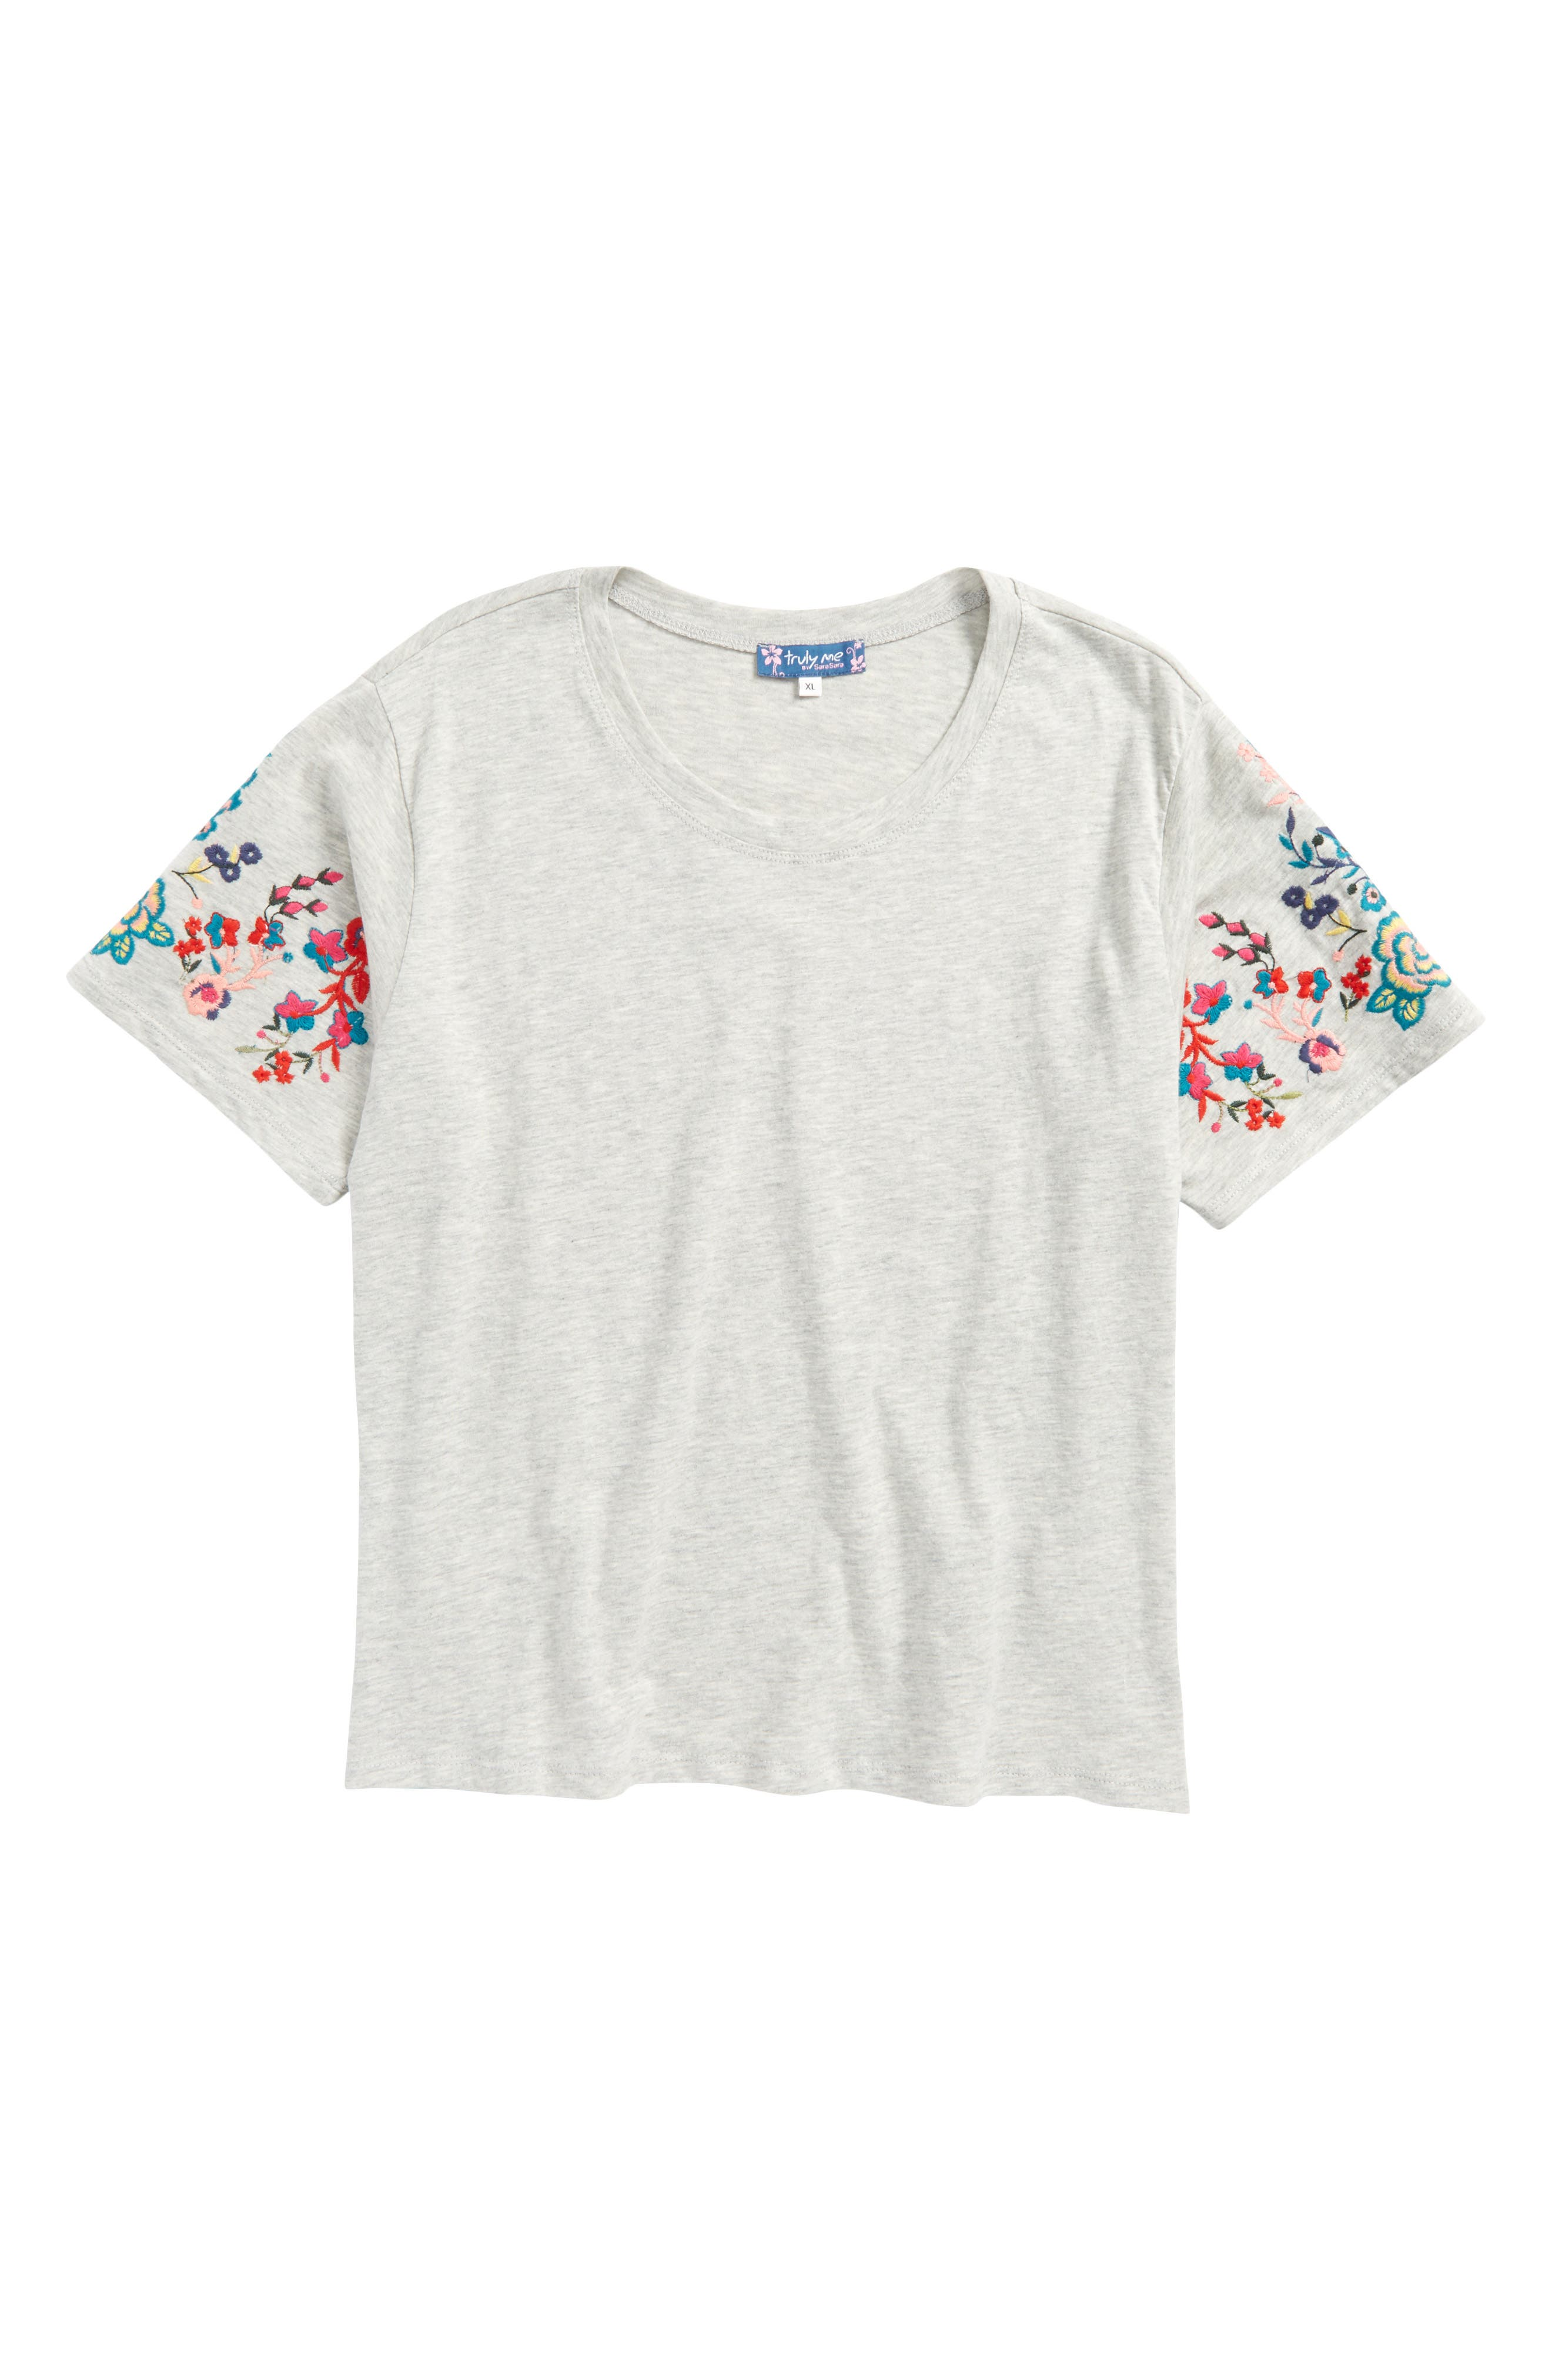 Alternate Image 1 Selected - Truly Me Embroidered Sleeve Top (Big Girls)